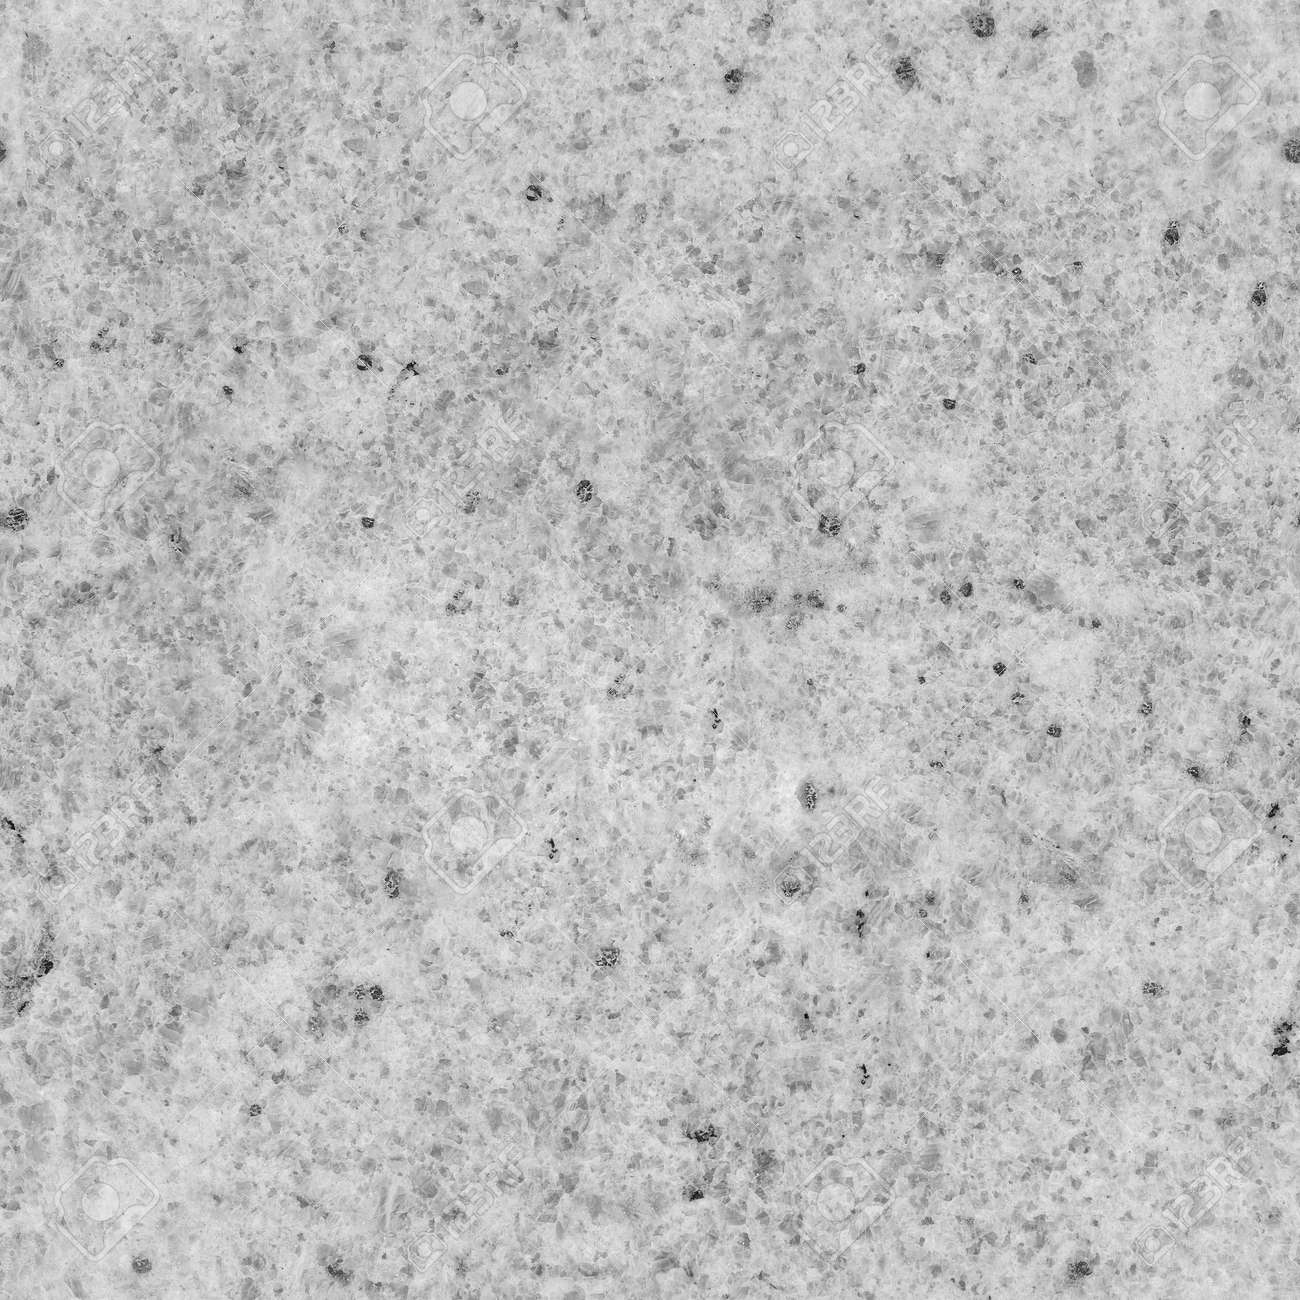 Seamless Gray Marble Background With Natural Pattern Tiled Marble Stock Photo Picture And Royalty Free Image Image 48245837